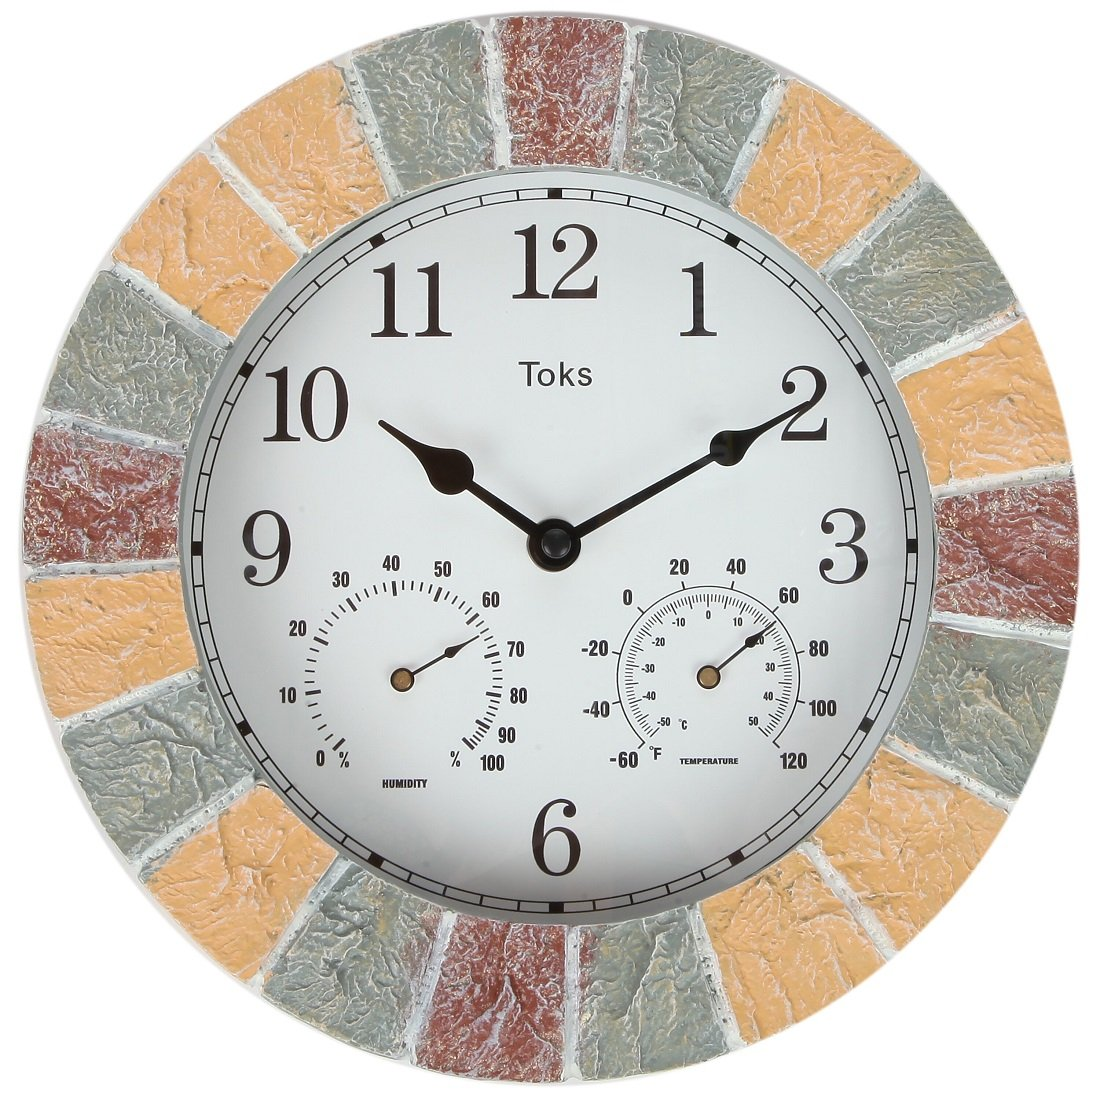 Lilys Home Hanging Wall Clock, Includes a Thermometer and Hygrometer and is Ideal for Indoor and Outdoor Use, Faux-Stone (10 Inches)